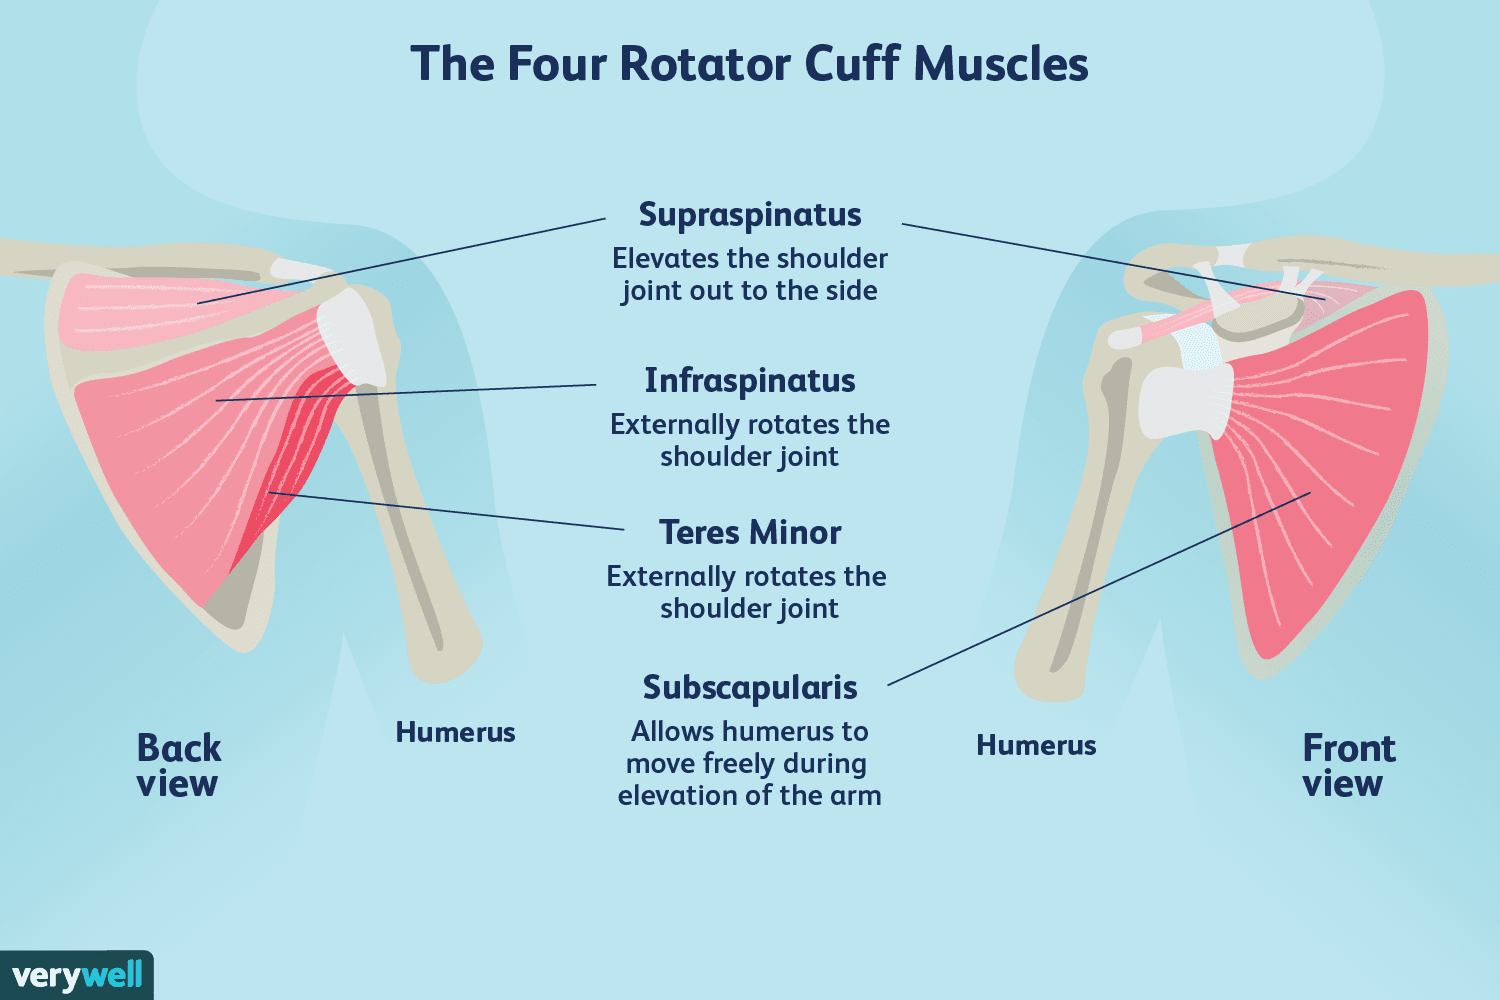 The S I T S Muscles of the Rotator Cuff